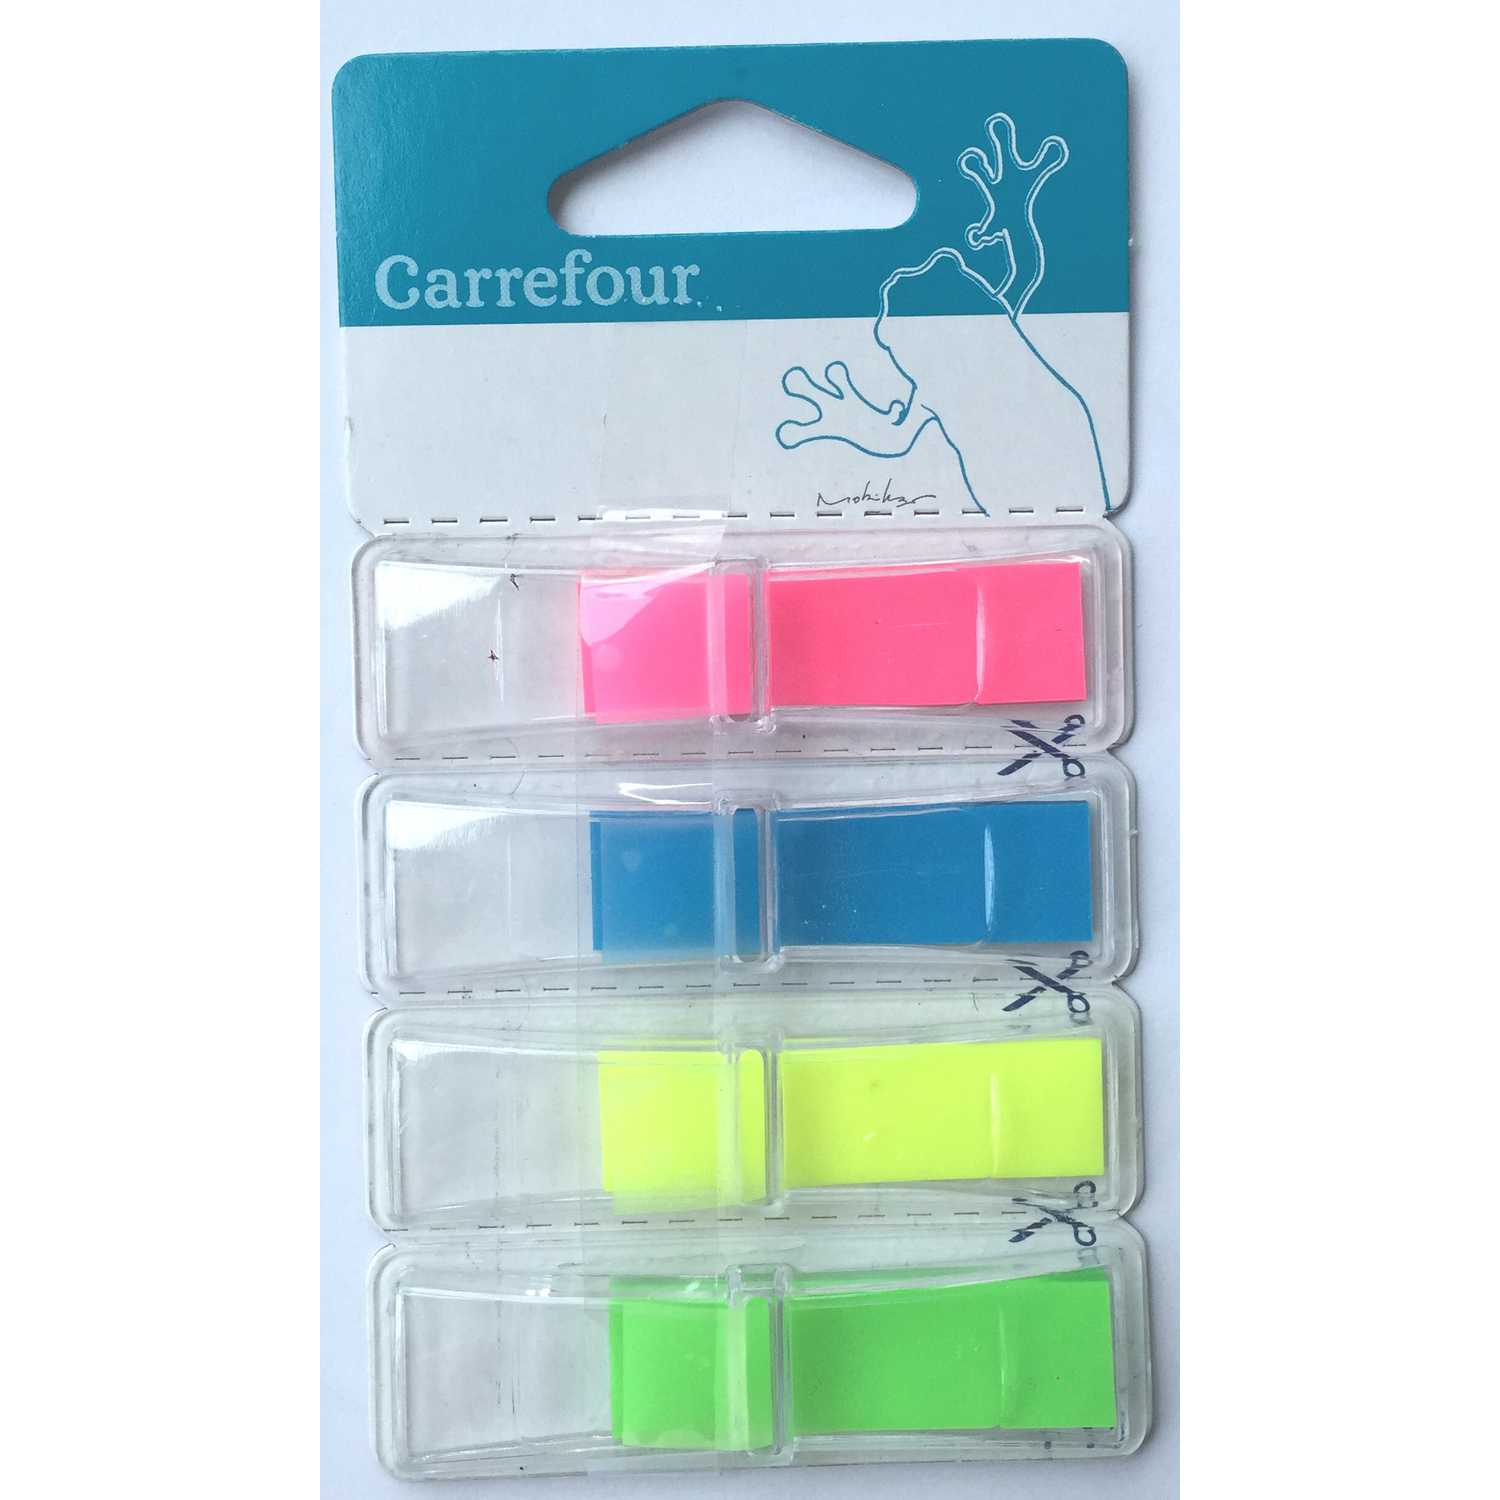 Marcadores 4x35 Index Carrefour con Dispensador